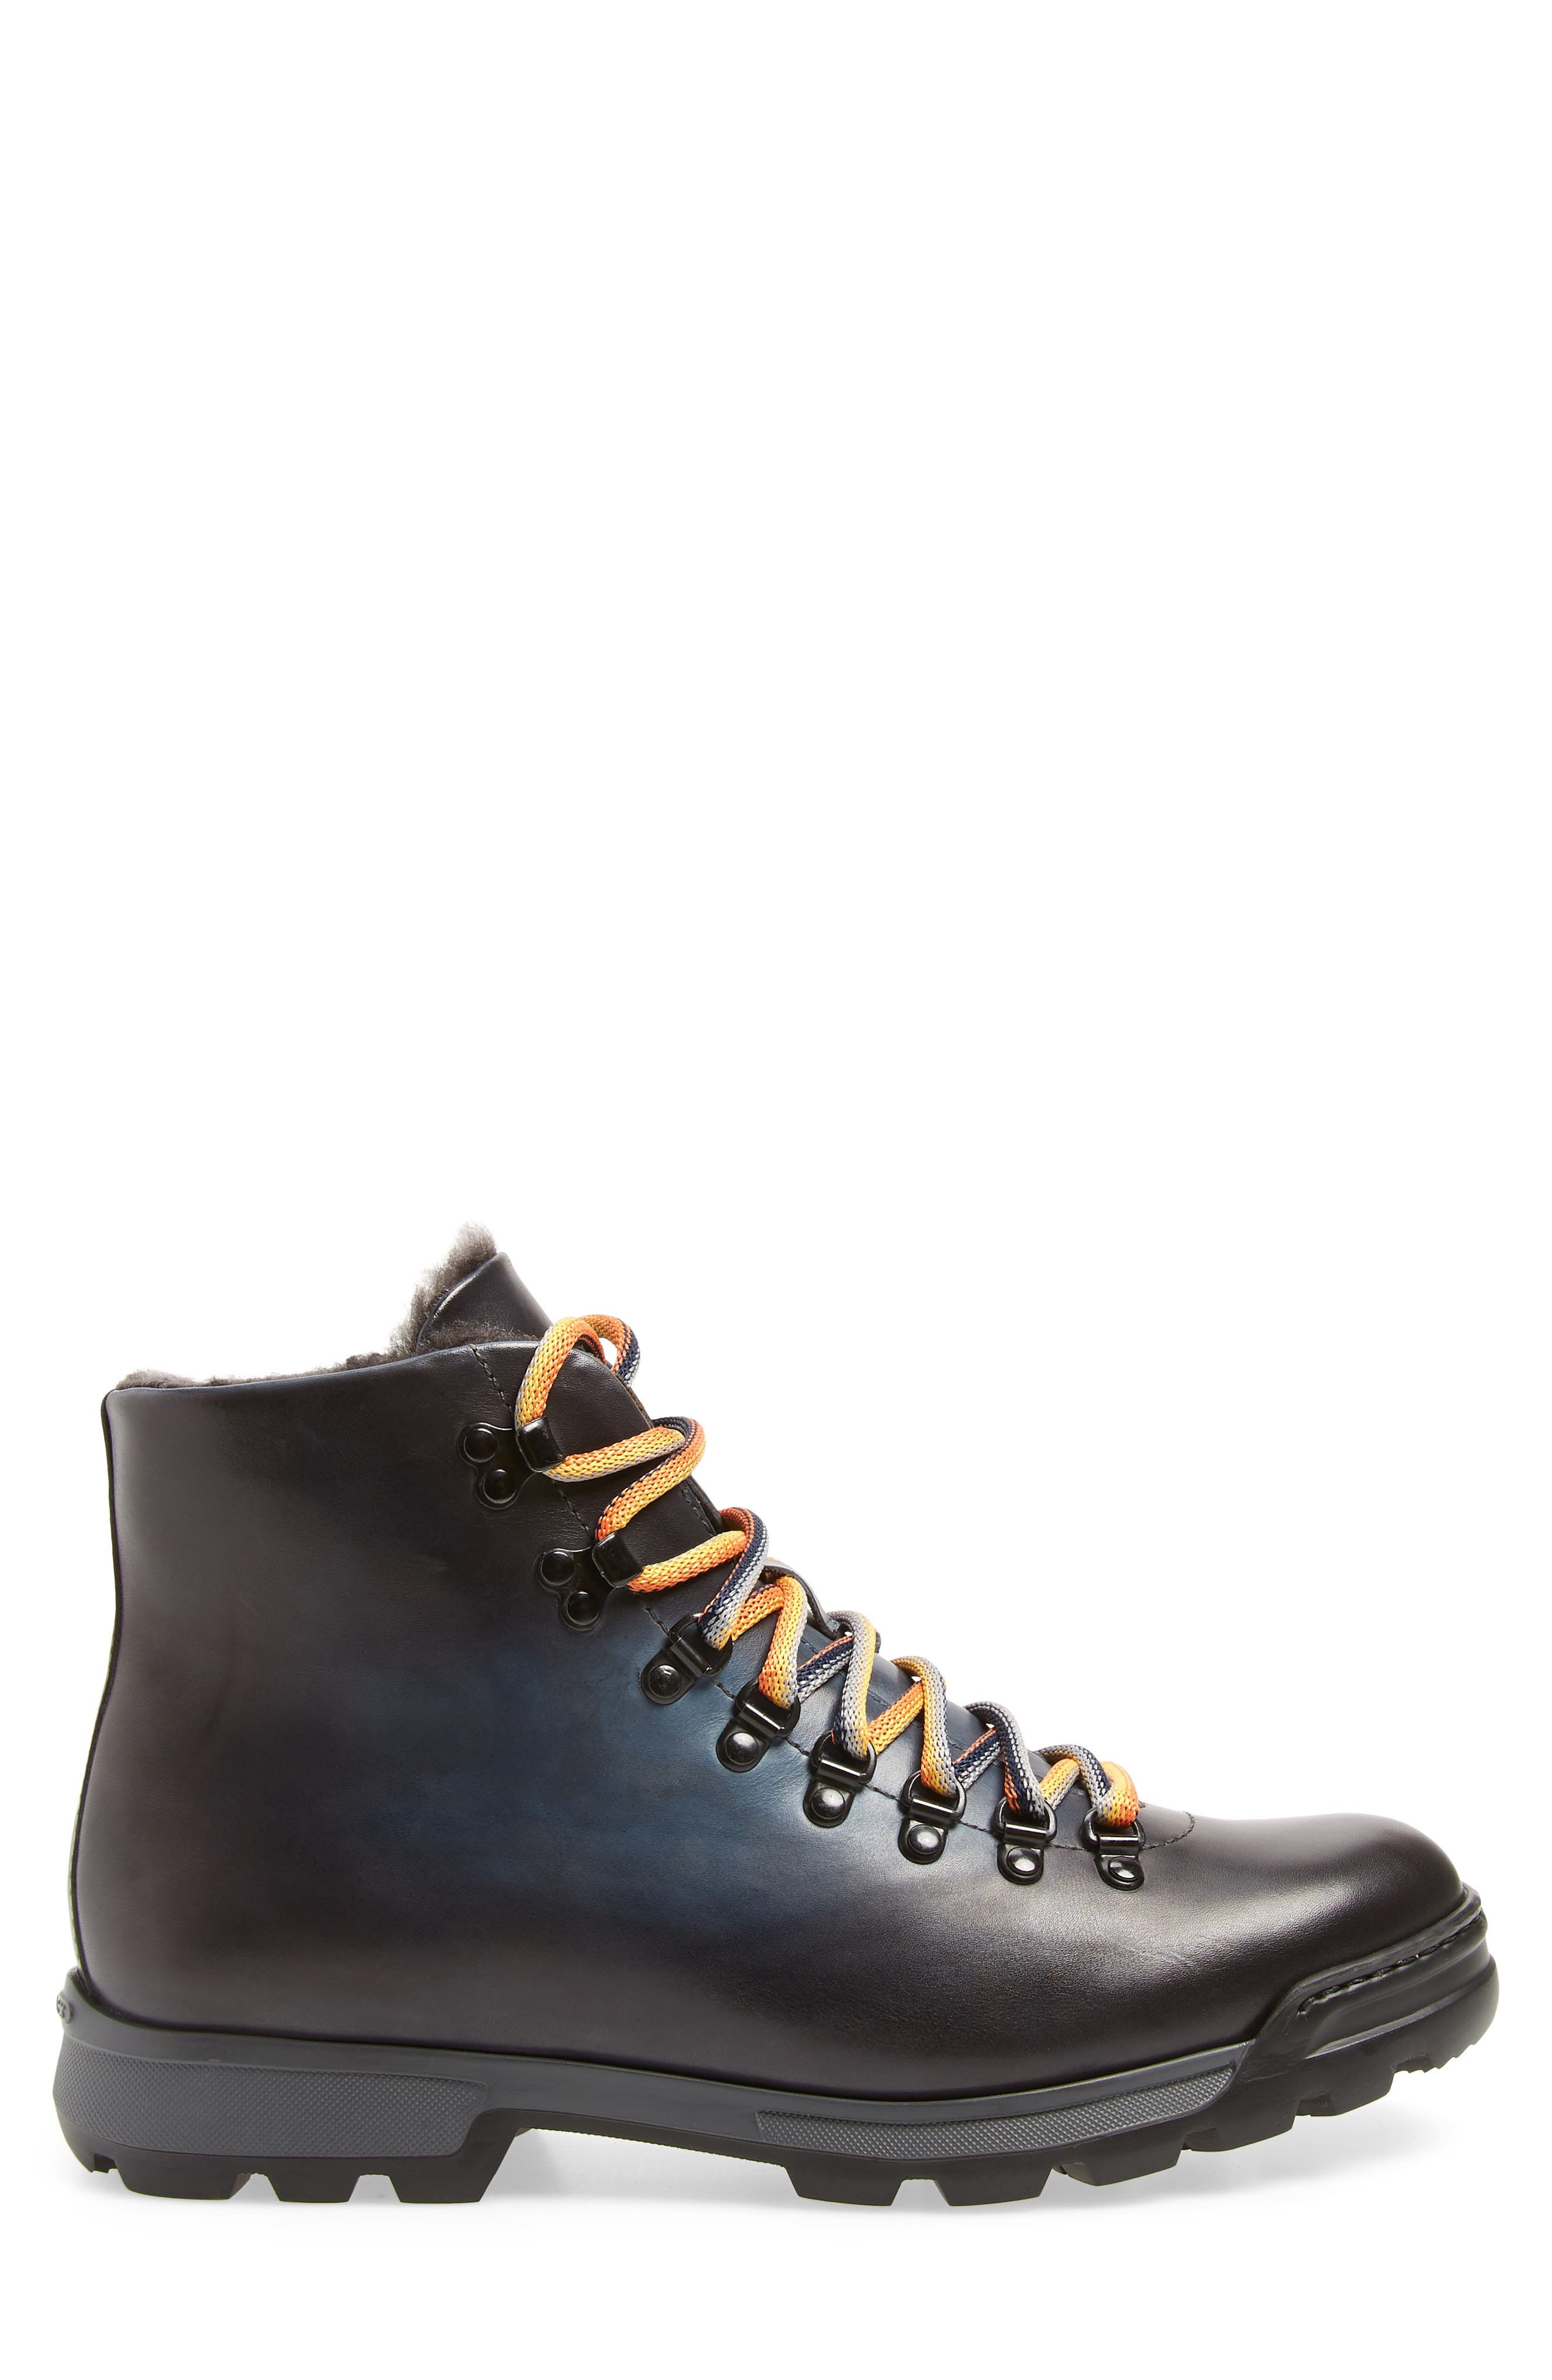 Oberon Genuine Shearling Lace-Up Hiking Boot,                             Alternate thumbnail 3, color,                             NAVY LEATHER